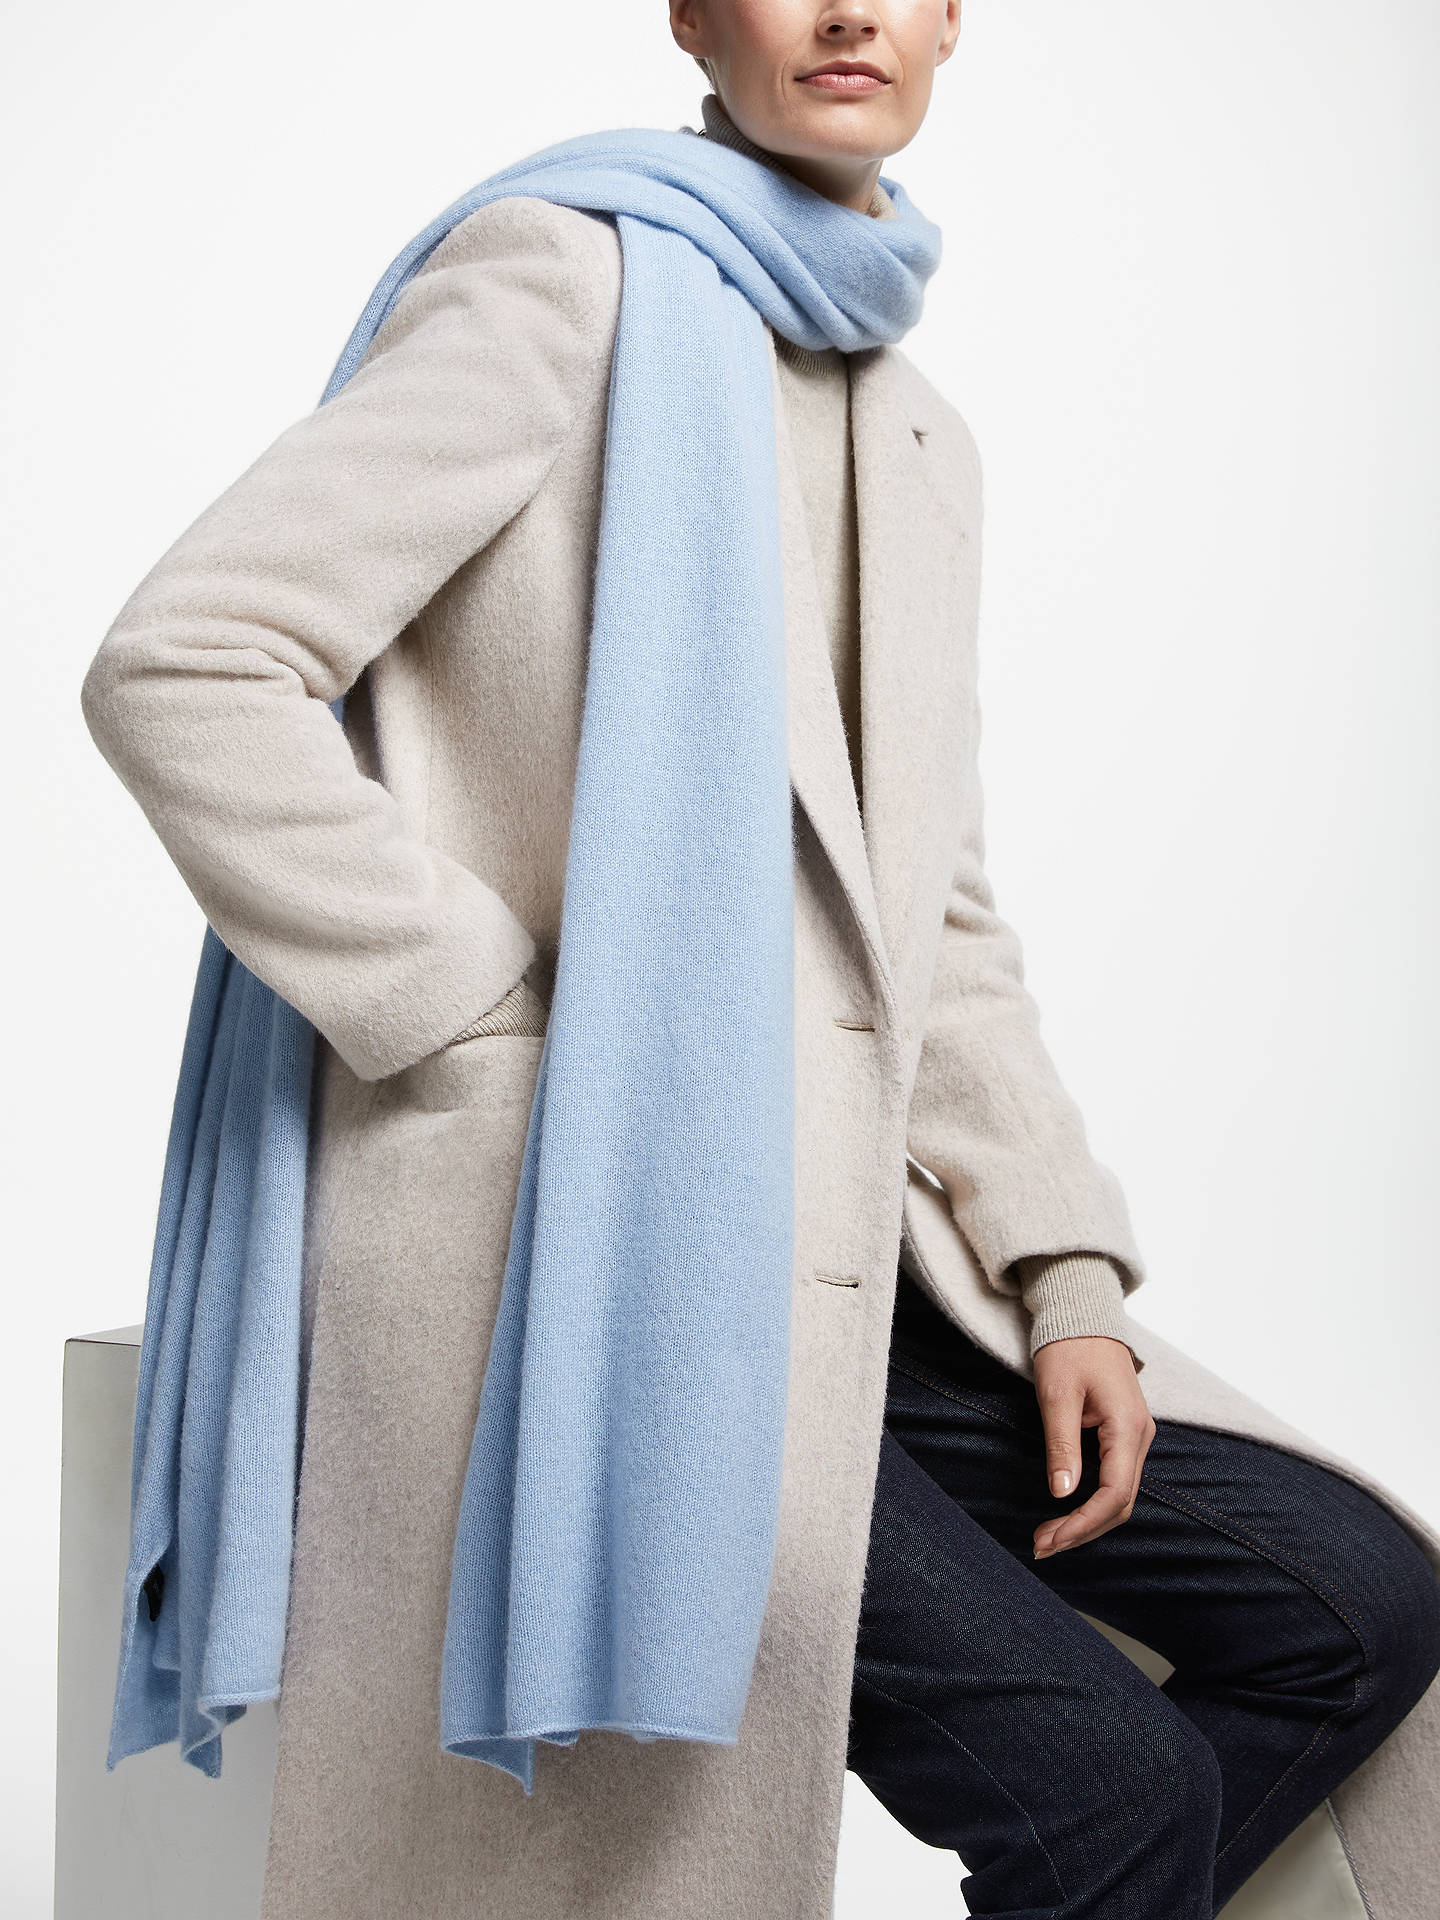 BuyJohn Lewis & Partners Cashmere Travel Wrap, Light Blue Online at johnlewis.com